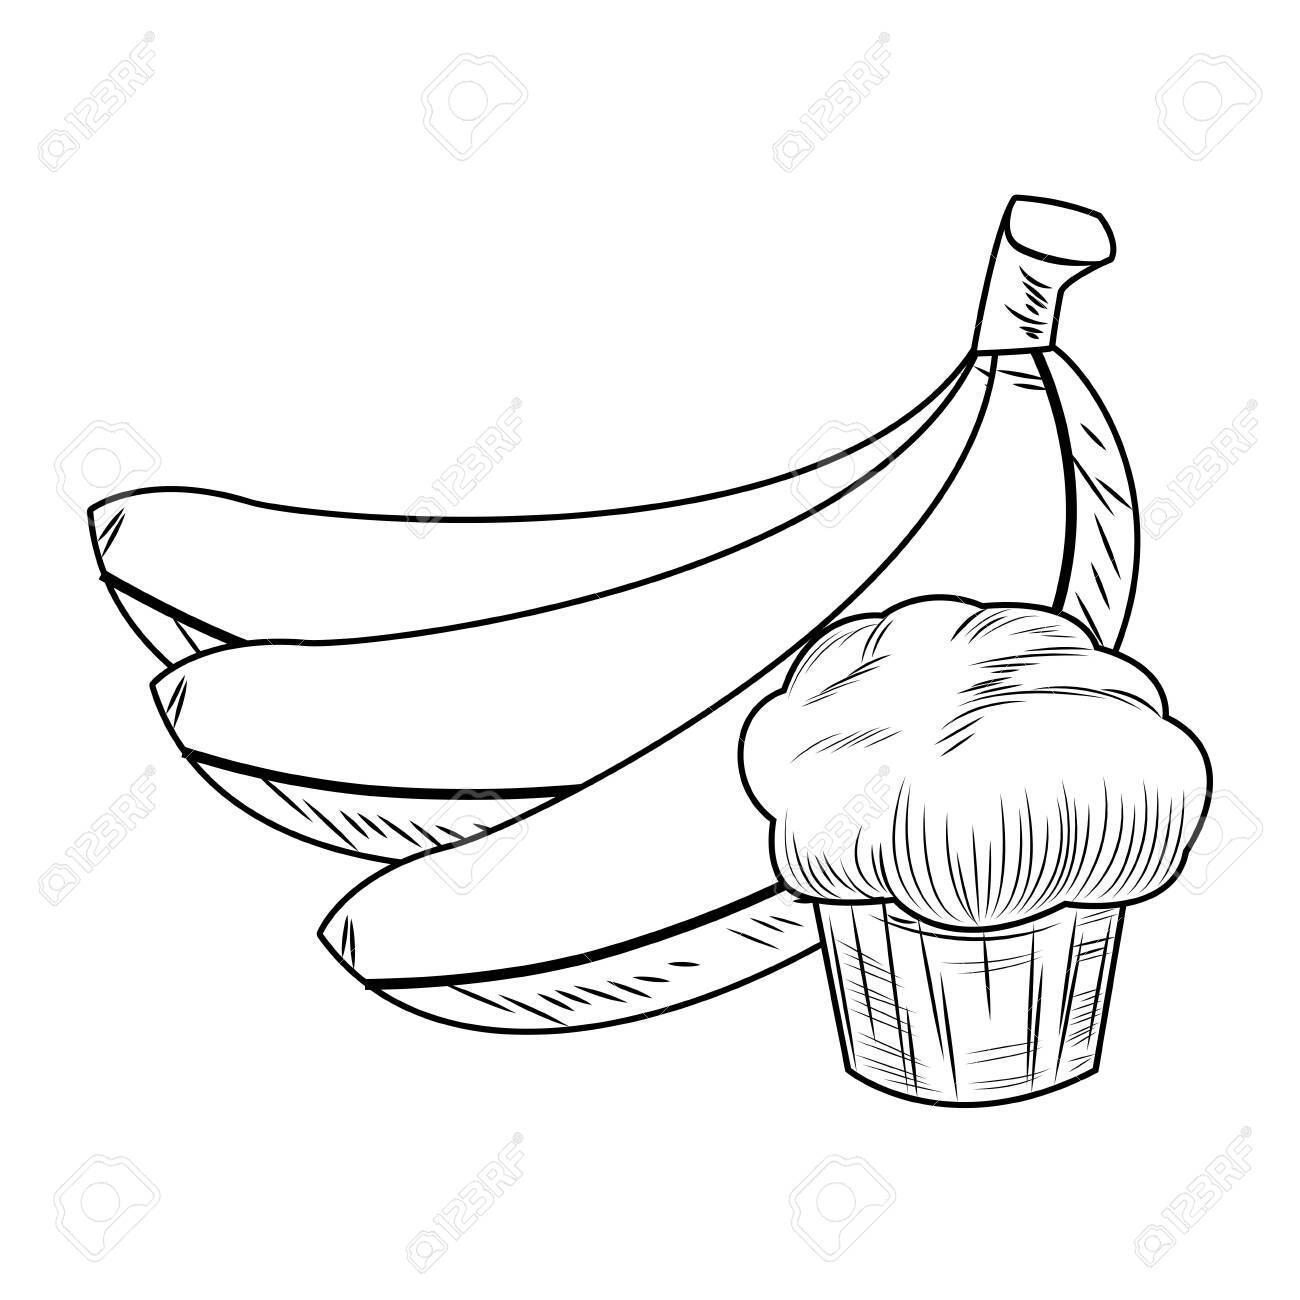 Fresh Fruit Nutrition Healthy Grouped Bananas And Muffin Black Royalty Free Cliparts Vectors And Stock Illustration Image 126380558